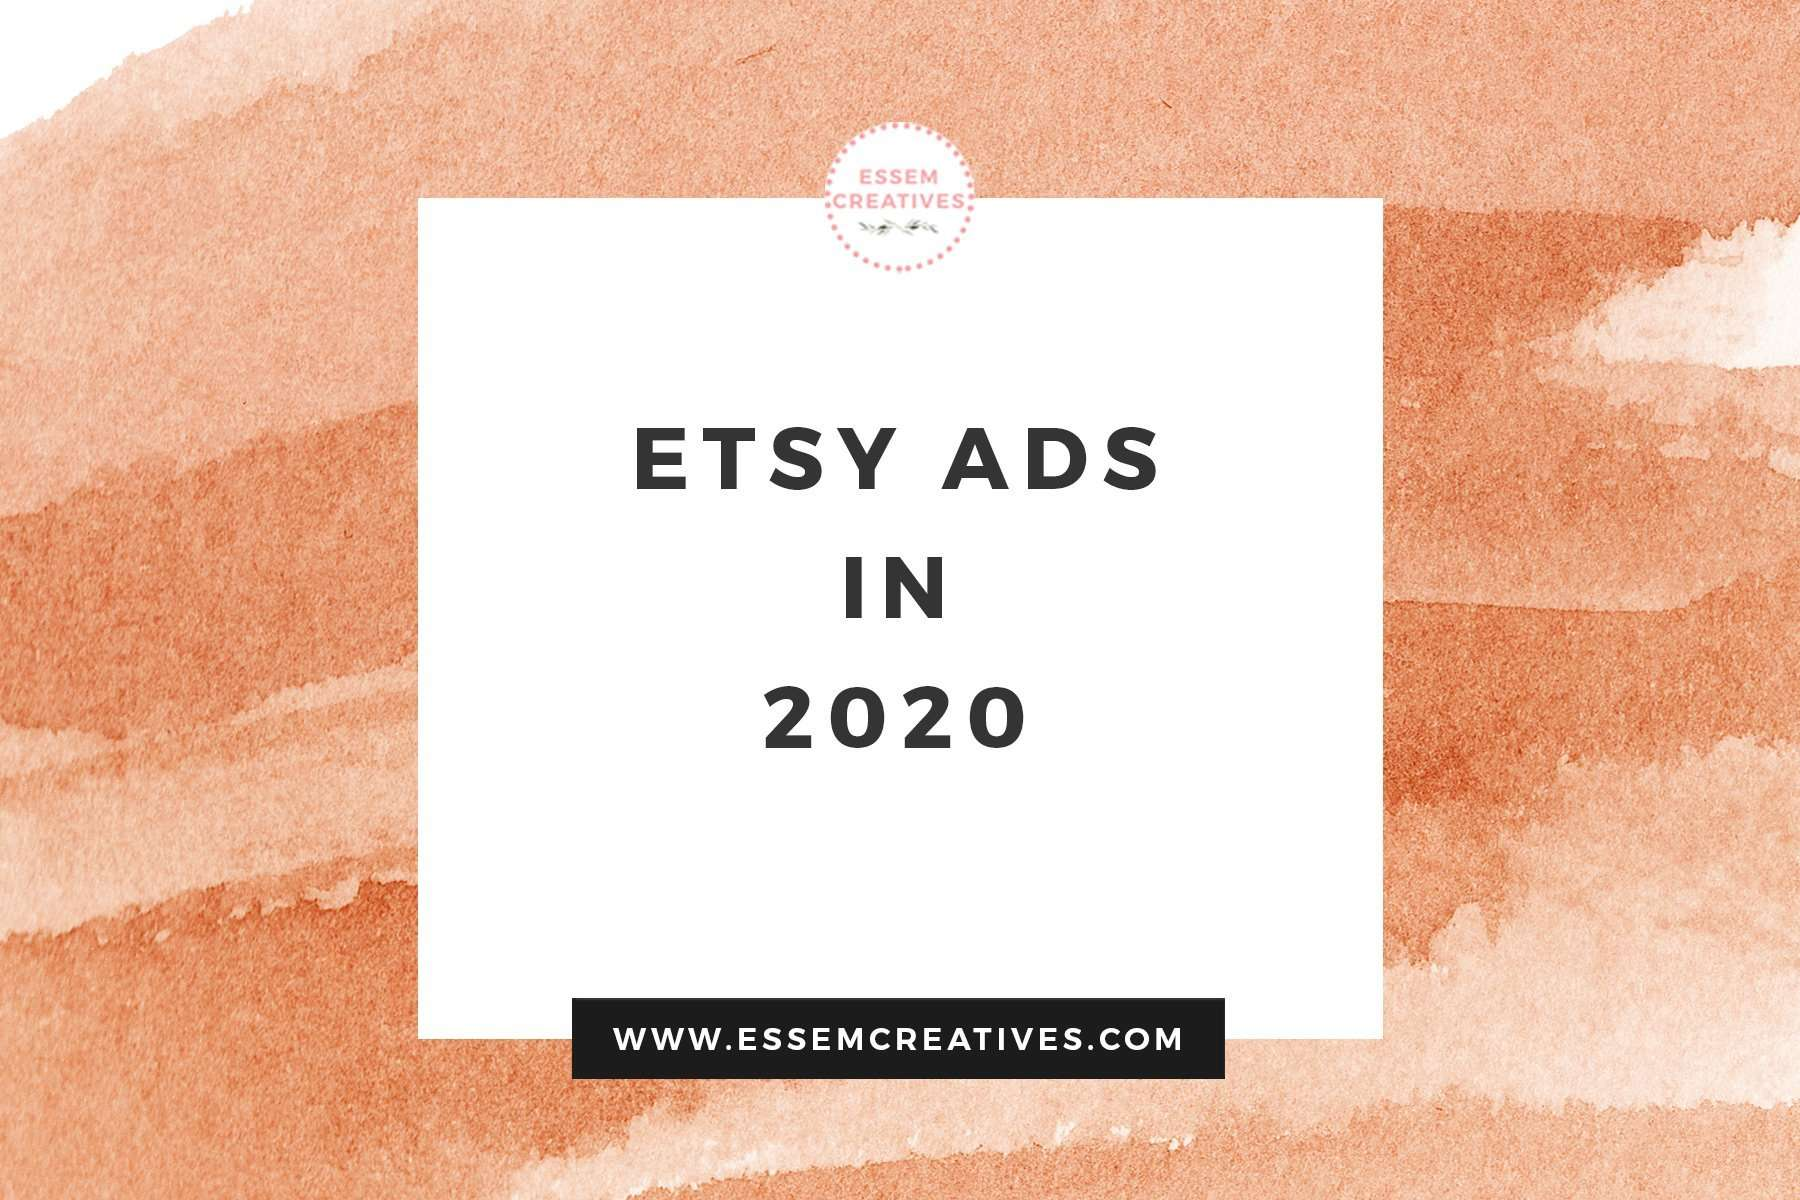 Etsy Ads in 2020